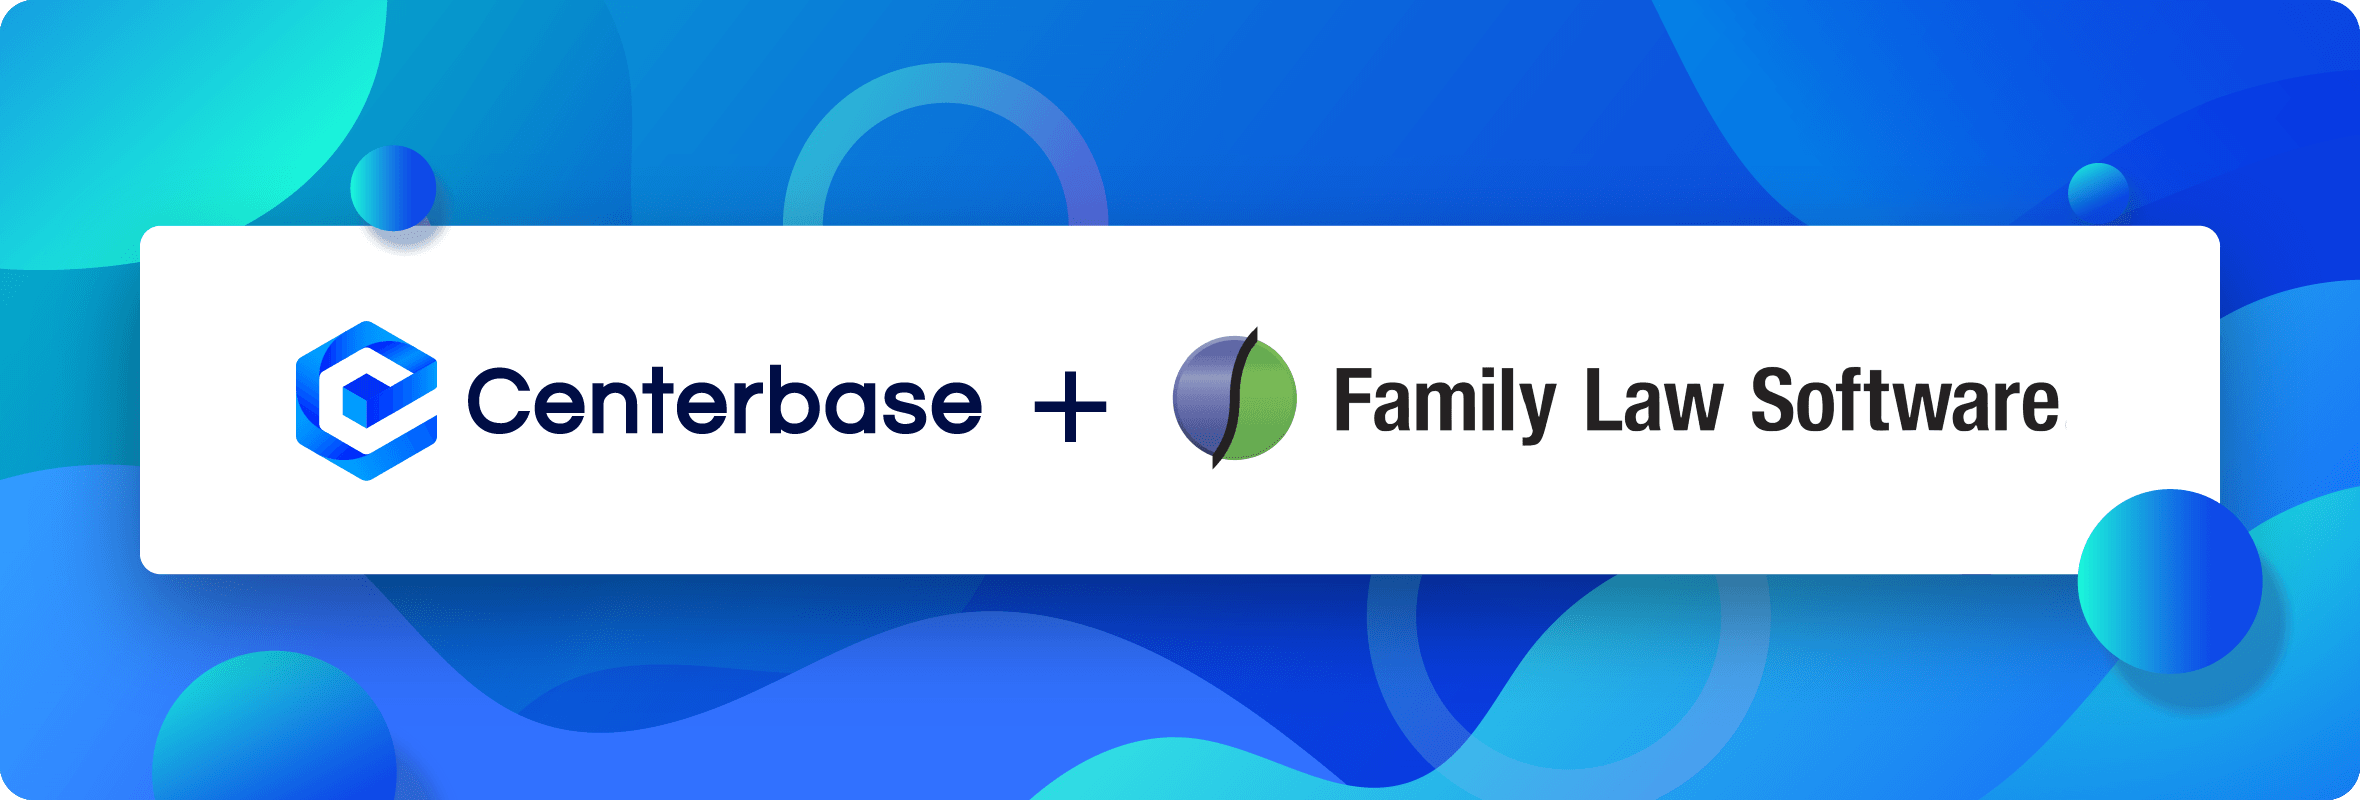 Centerbase is excited to announce we've acquired Family Law Software, the leading workflow software for family law legal practices.